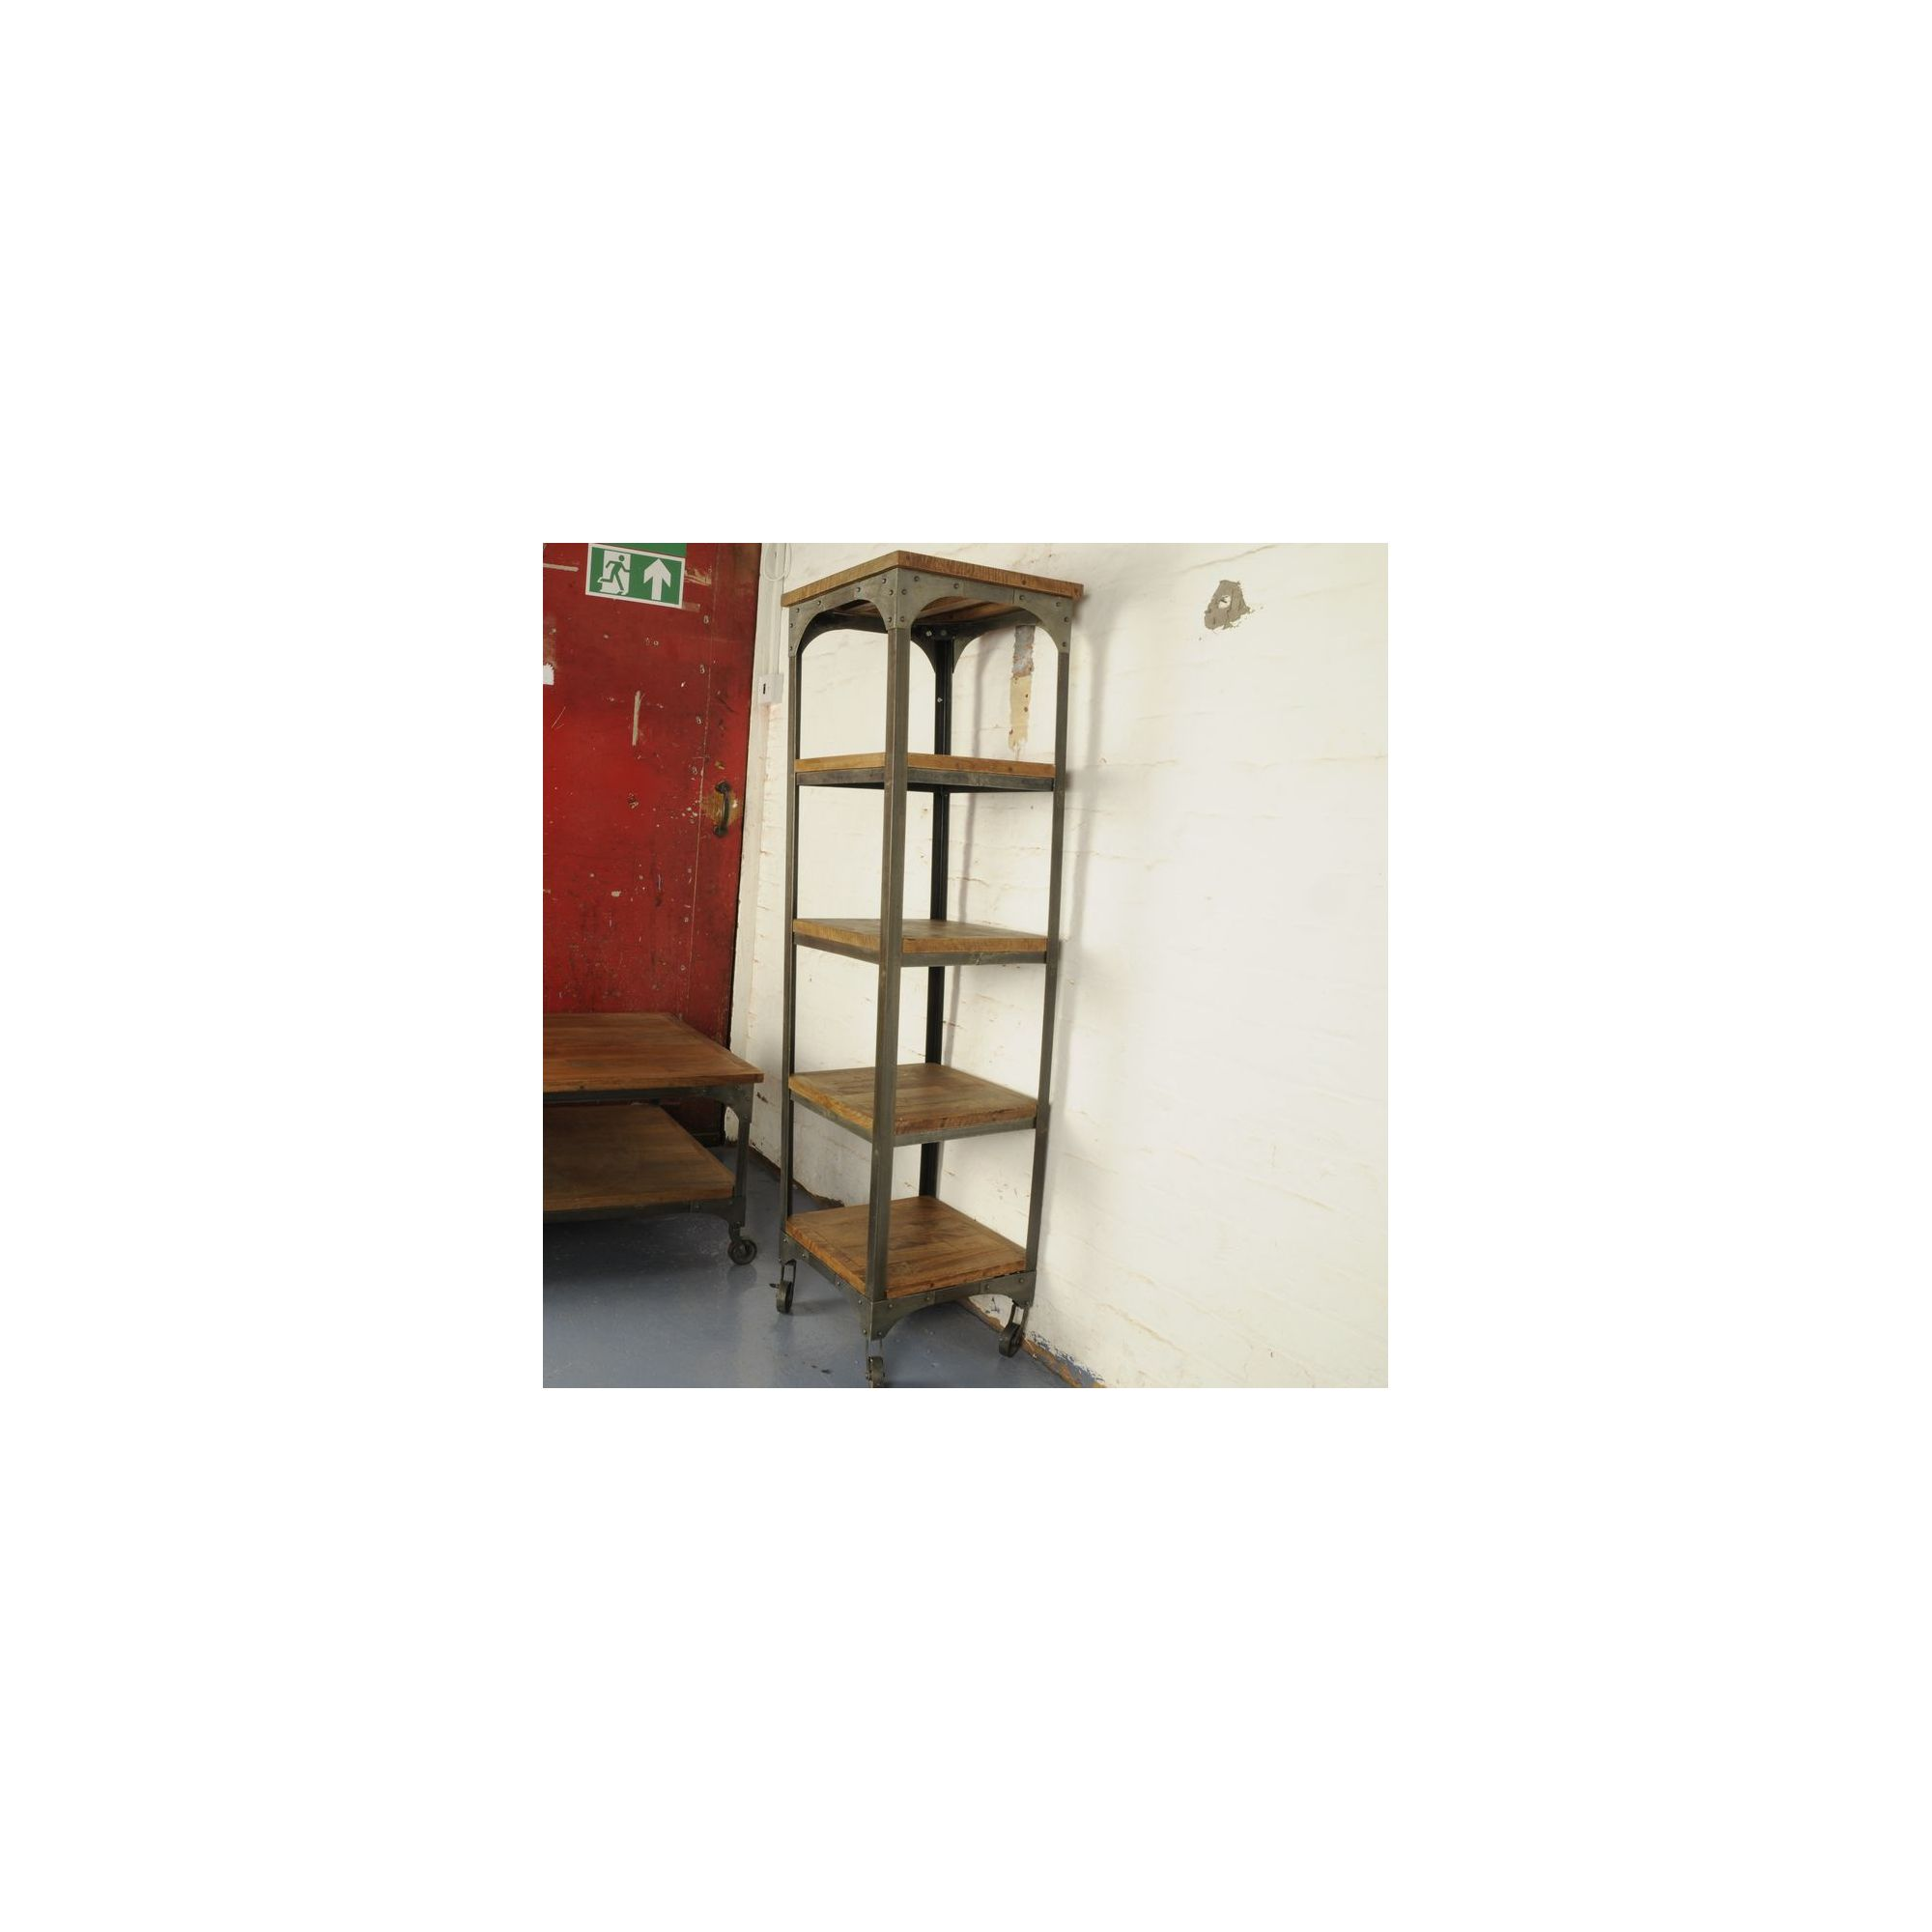 Oceans Apart Industrial Living Five Layer Corner Shelf at Tesco Direct